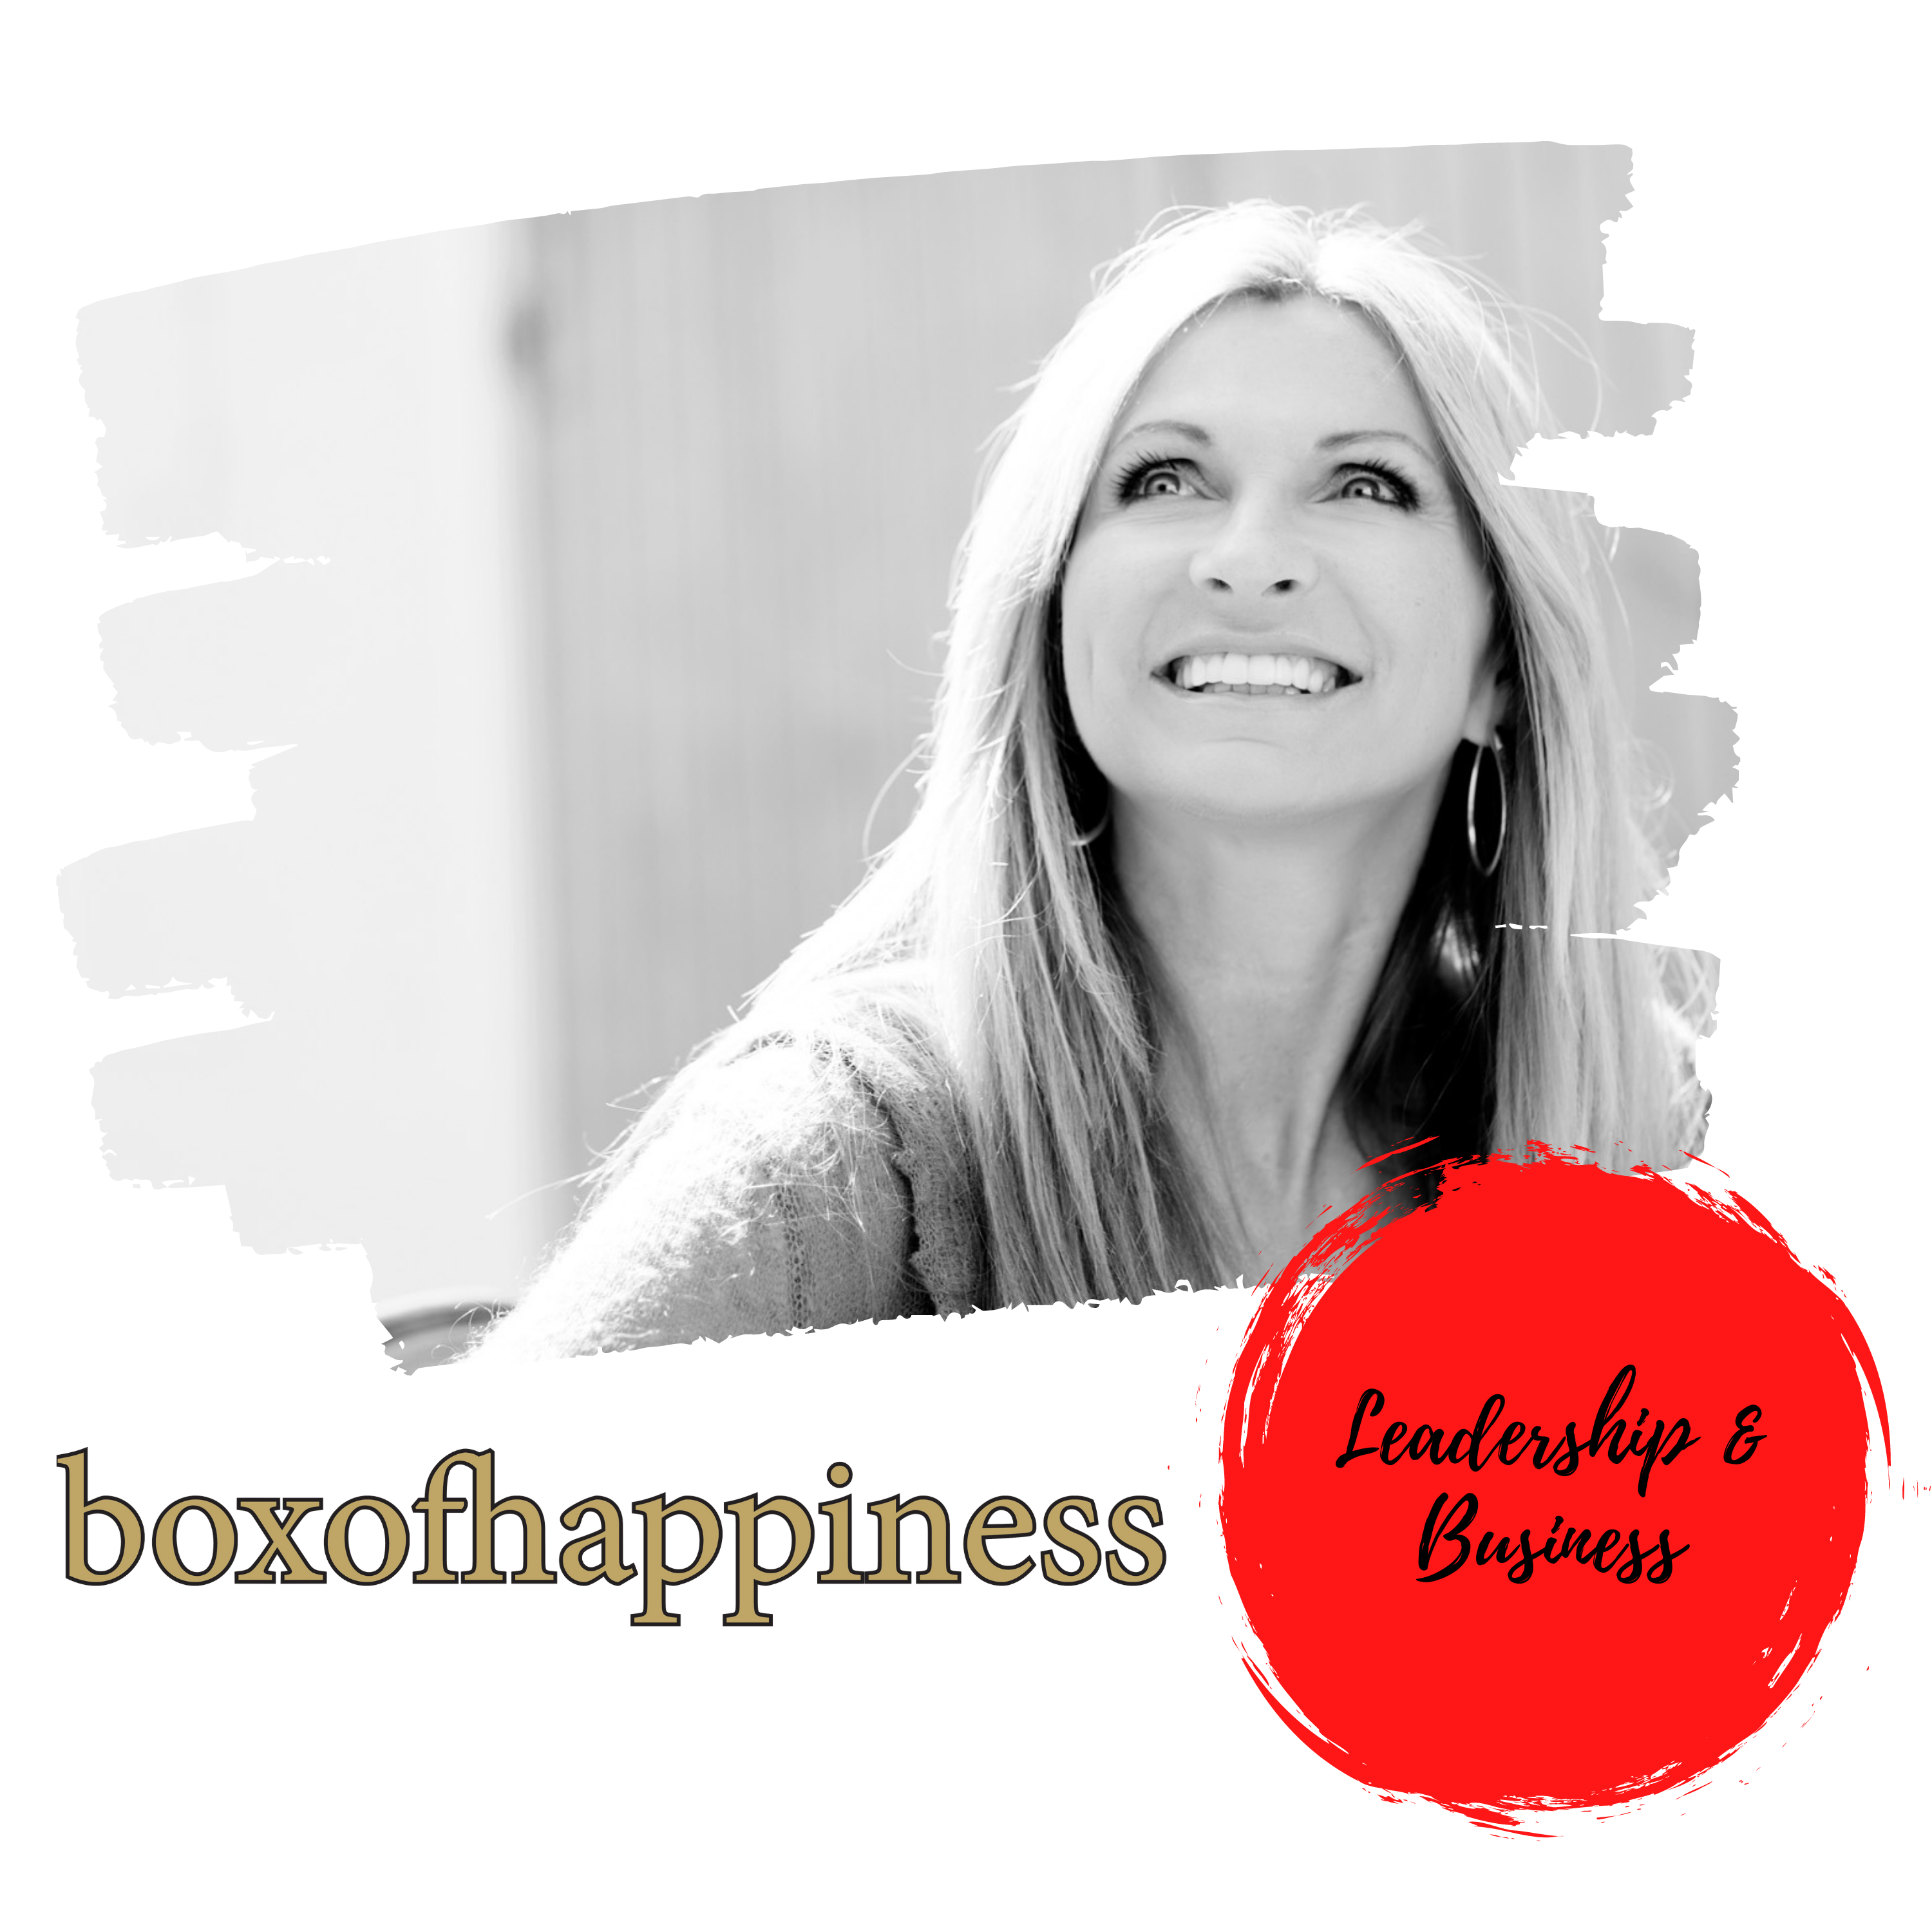 boxofhappiness leadership & business Cover